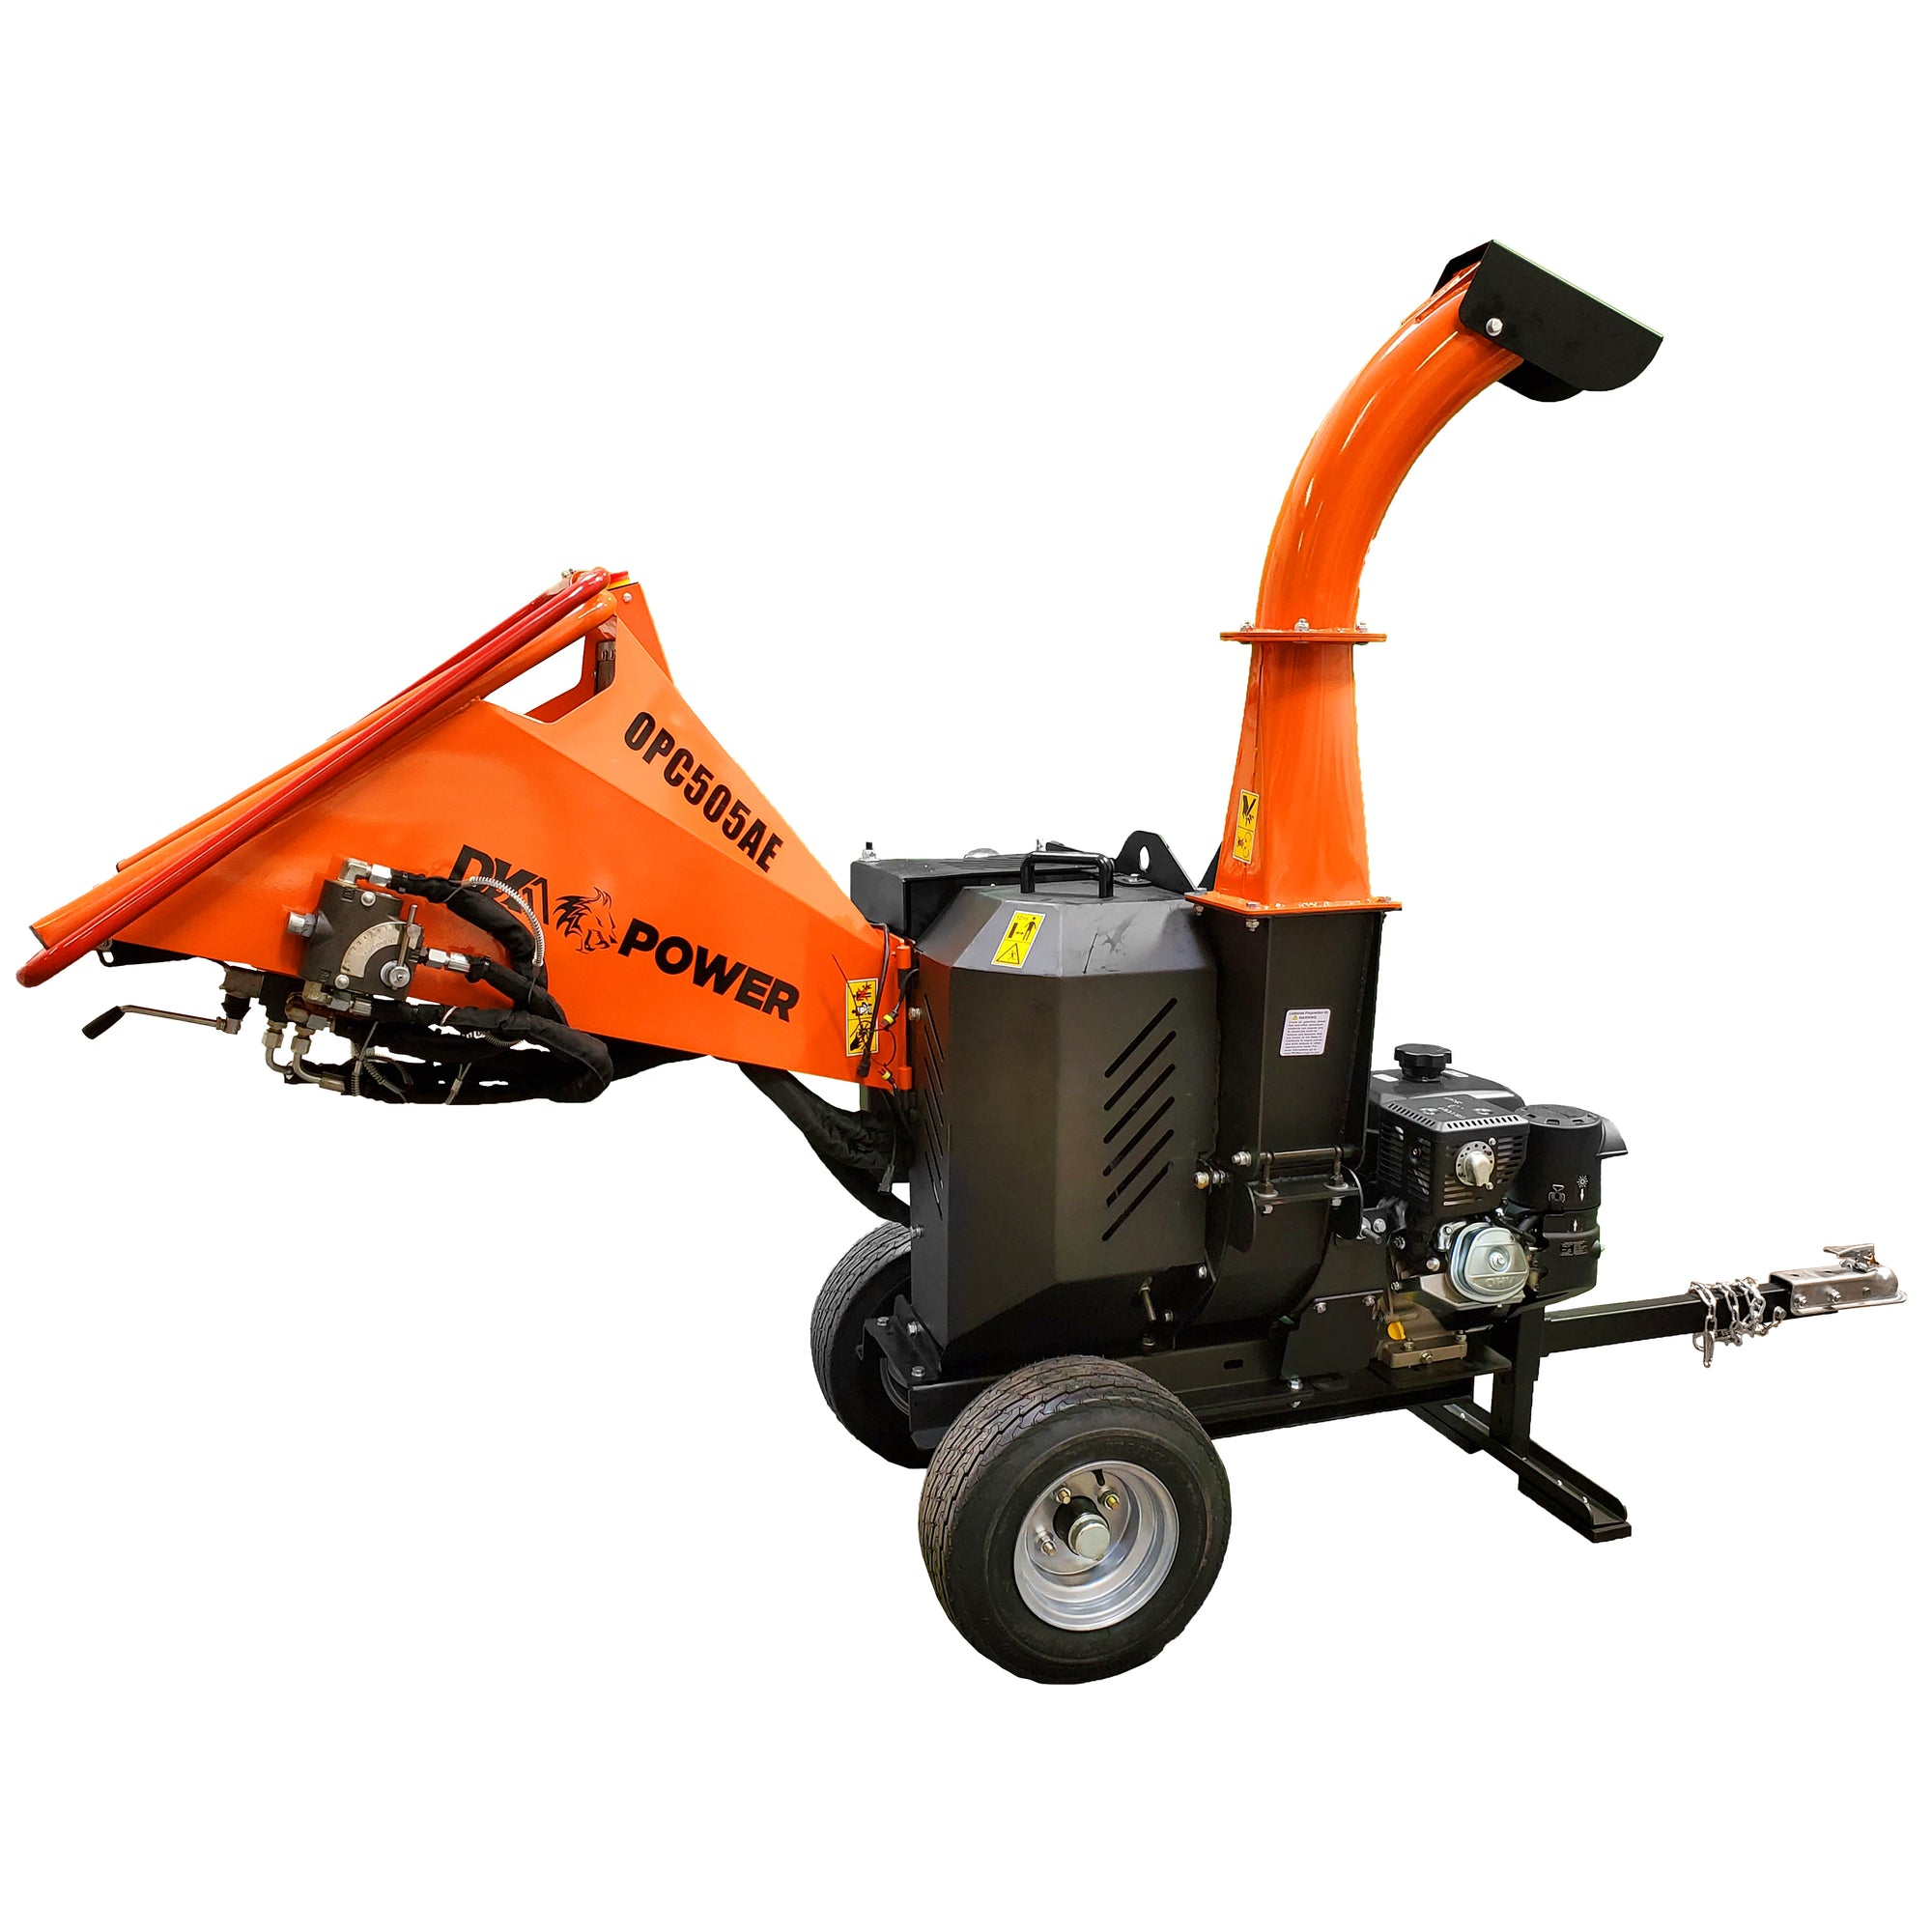 Detail K2 5 Inch 14 HP Chipper with Electric Starter - OPC505AE-Wood Splitter Outlet